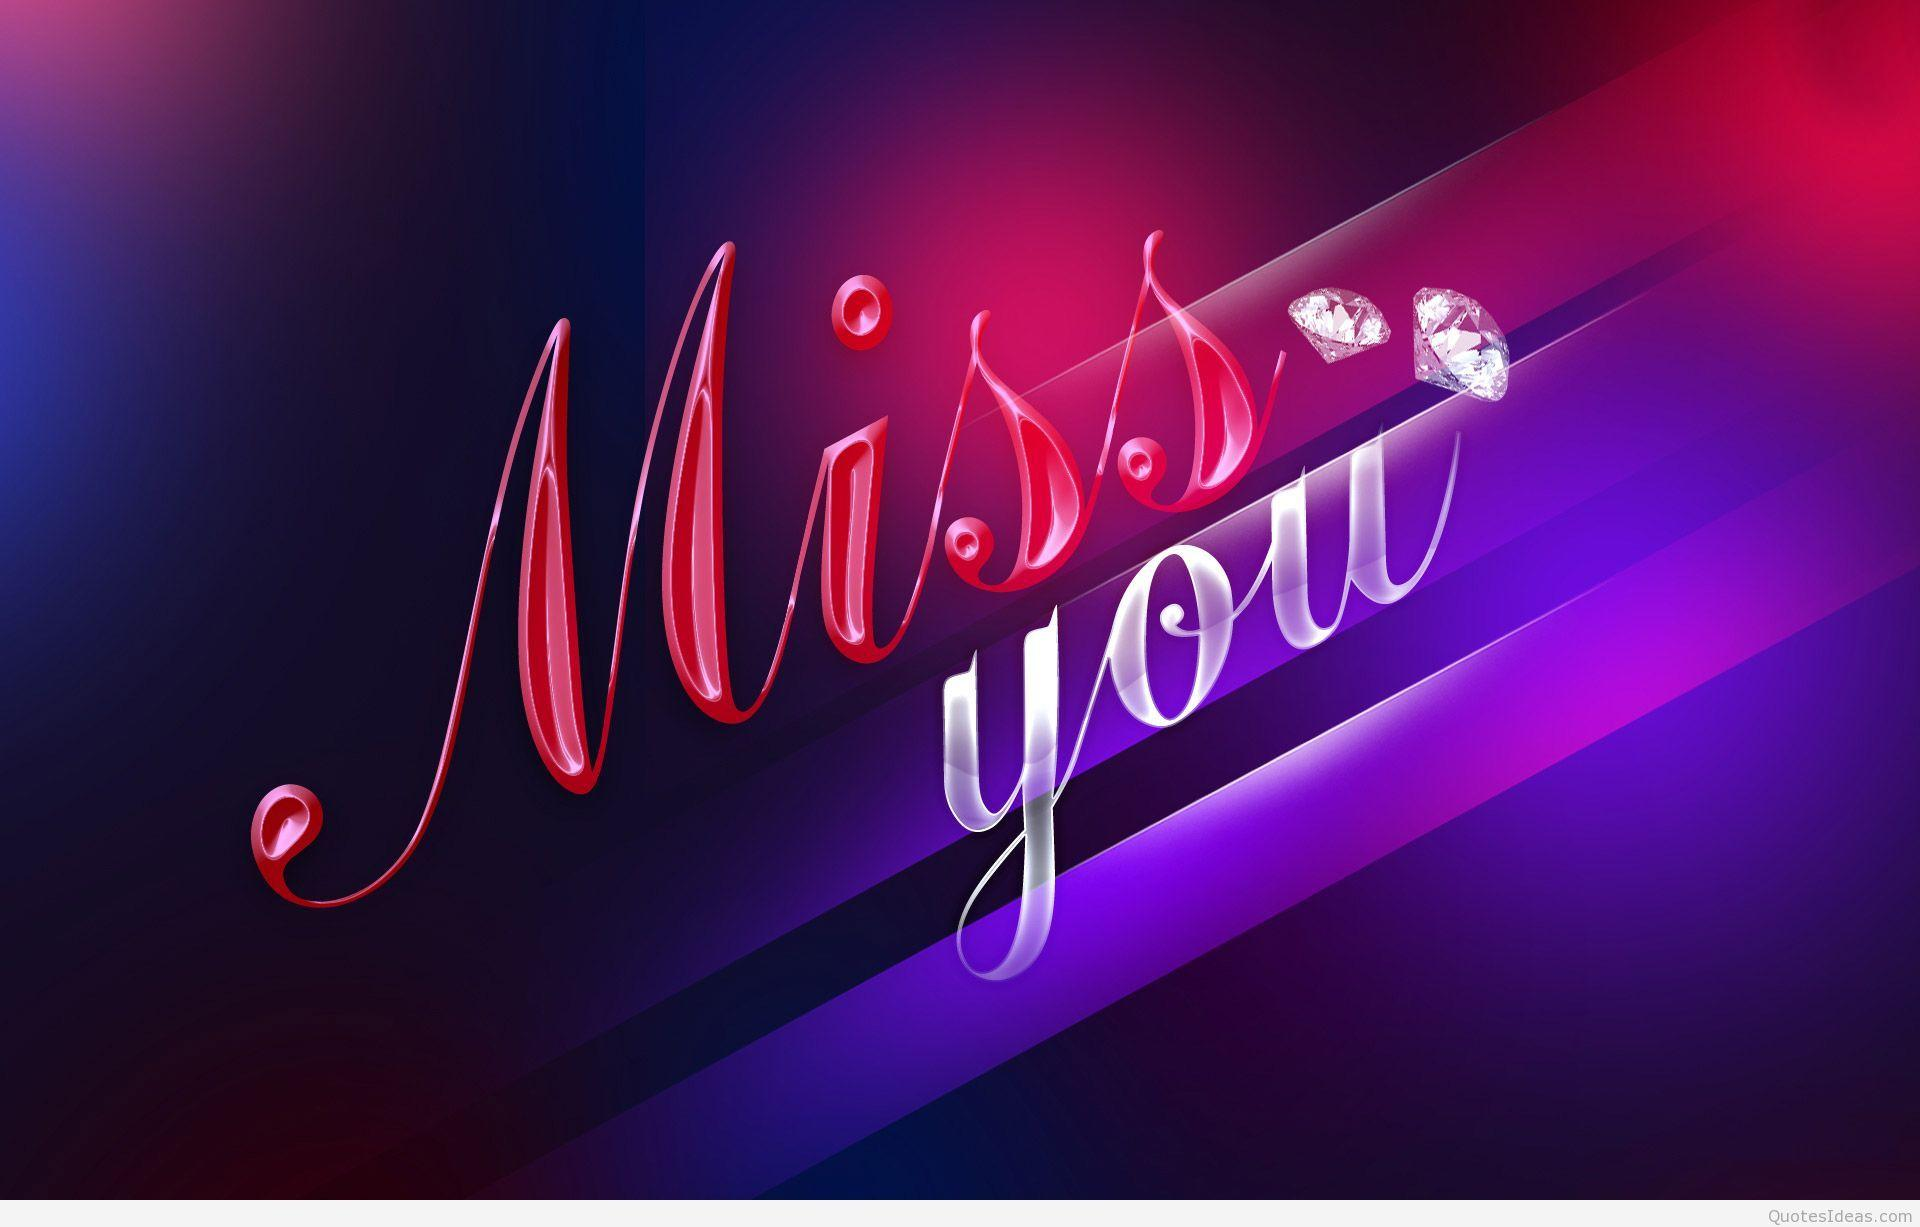 I Miss You Wallpapers HD - Wallpaper Cave